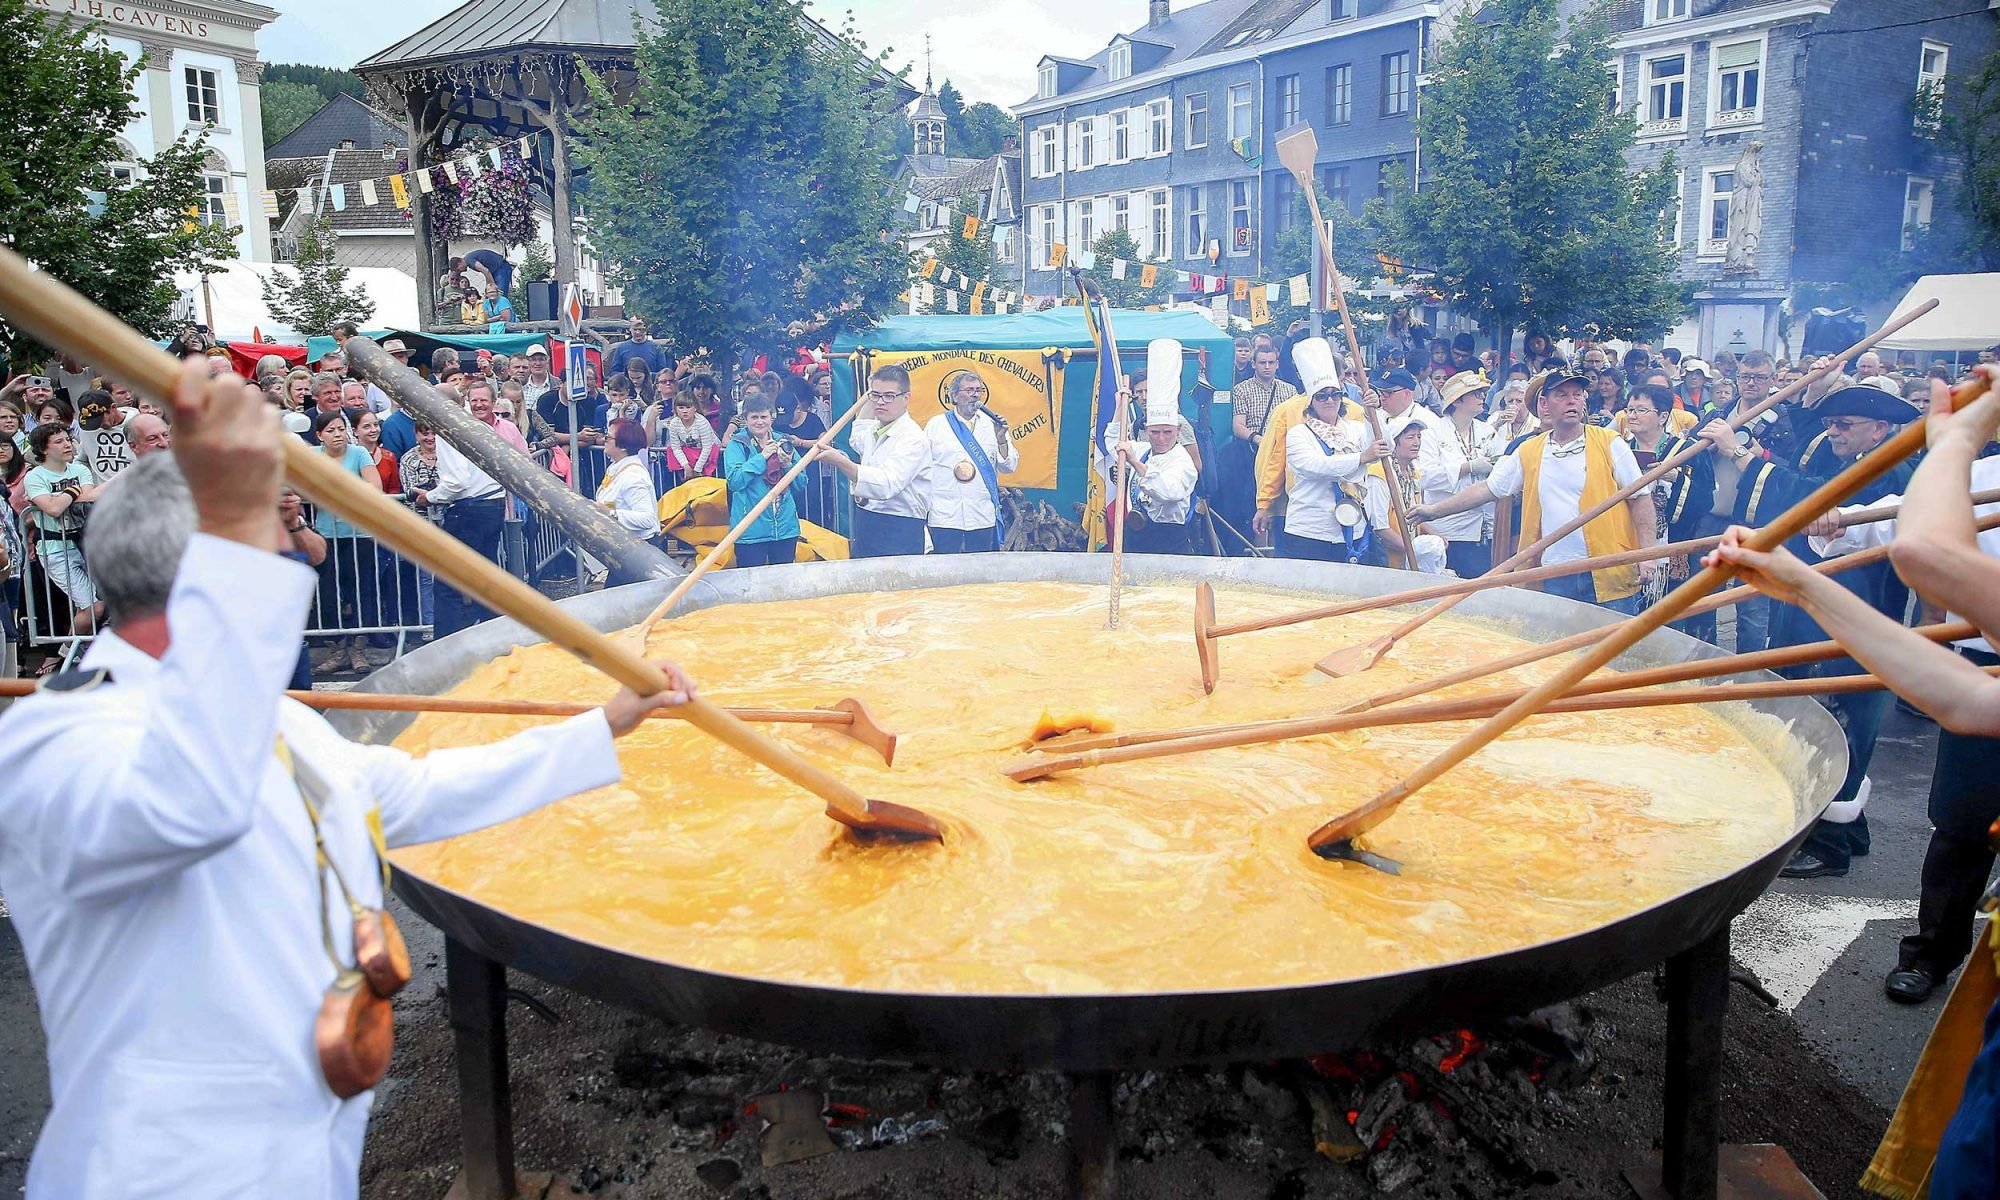 Men stirring giant omelet in pan over open flame